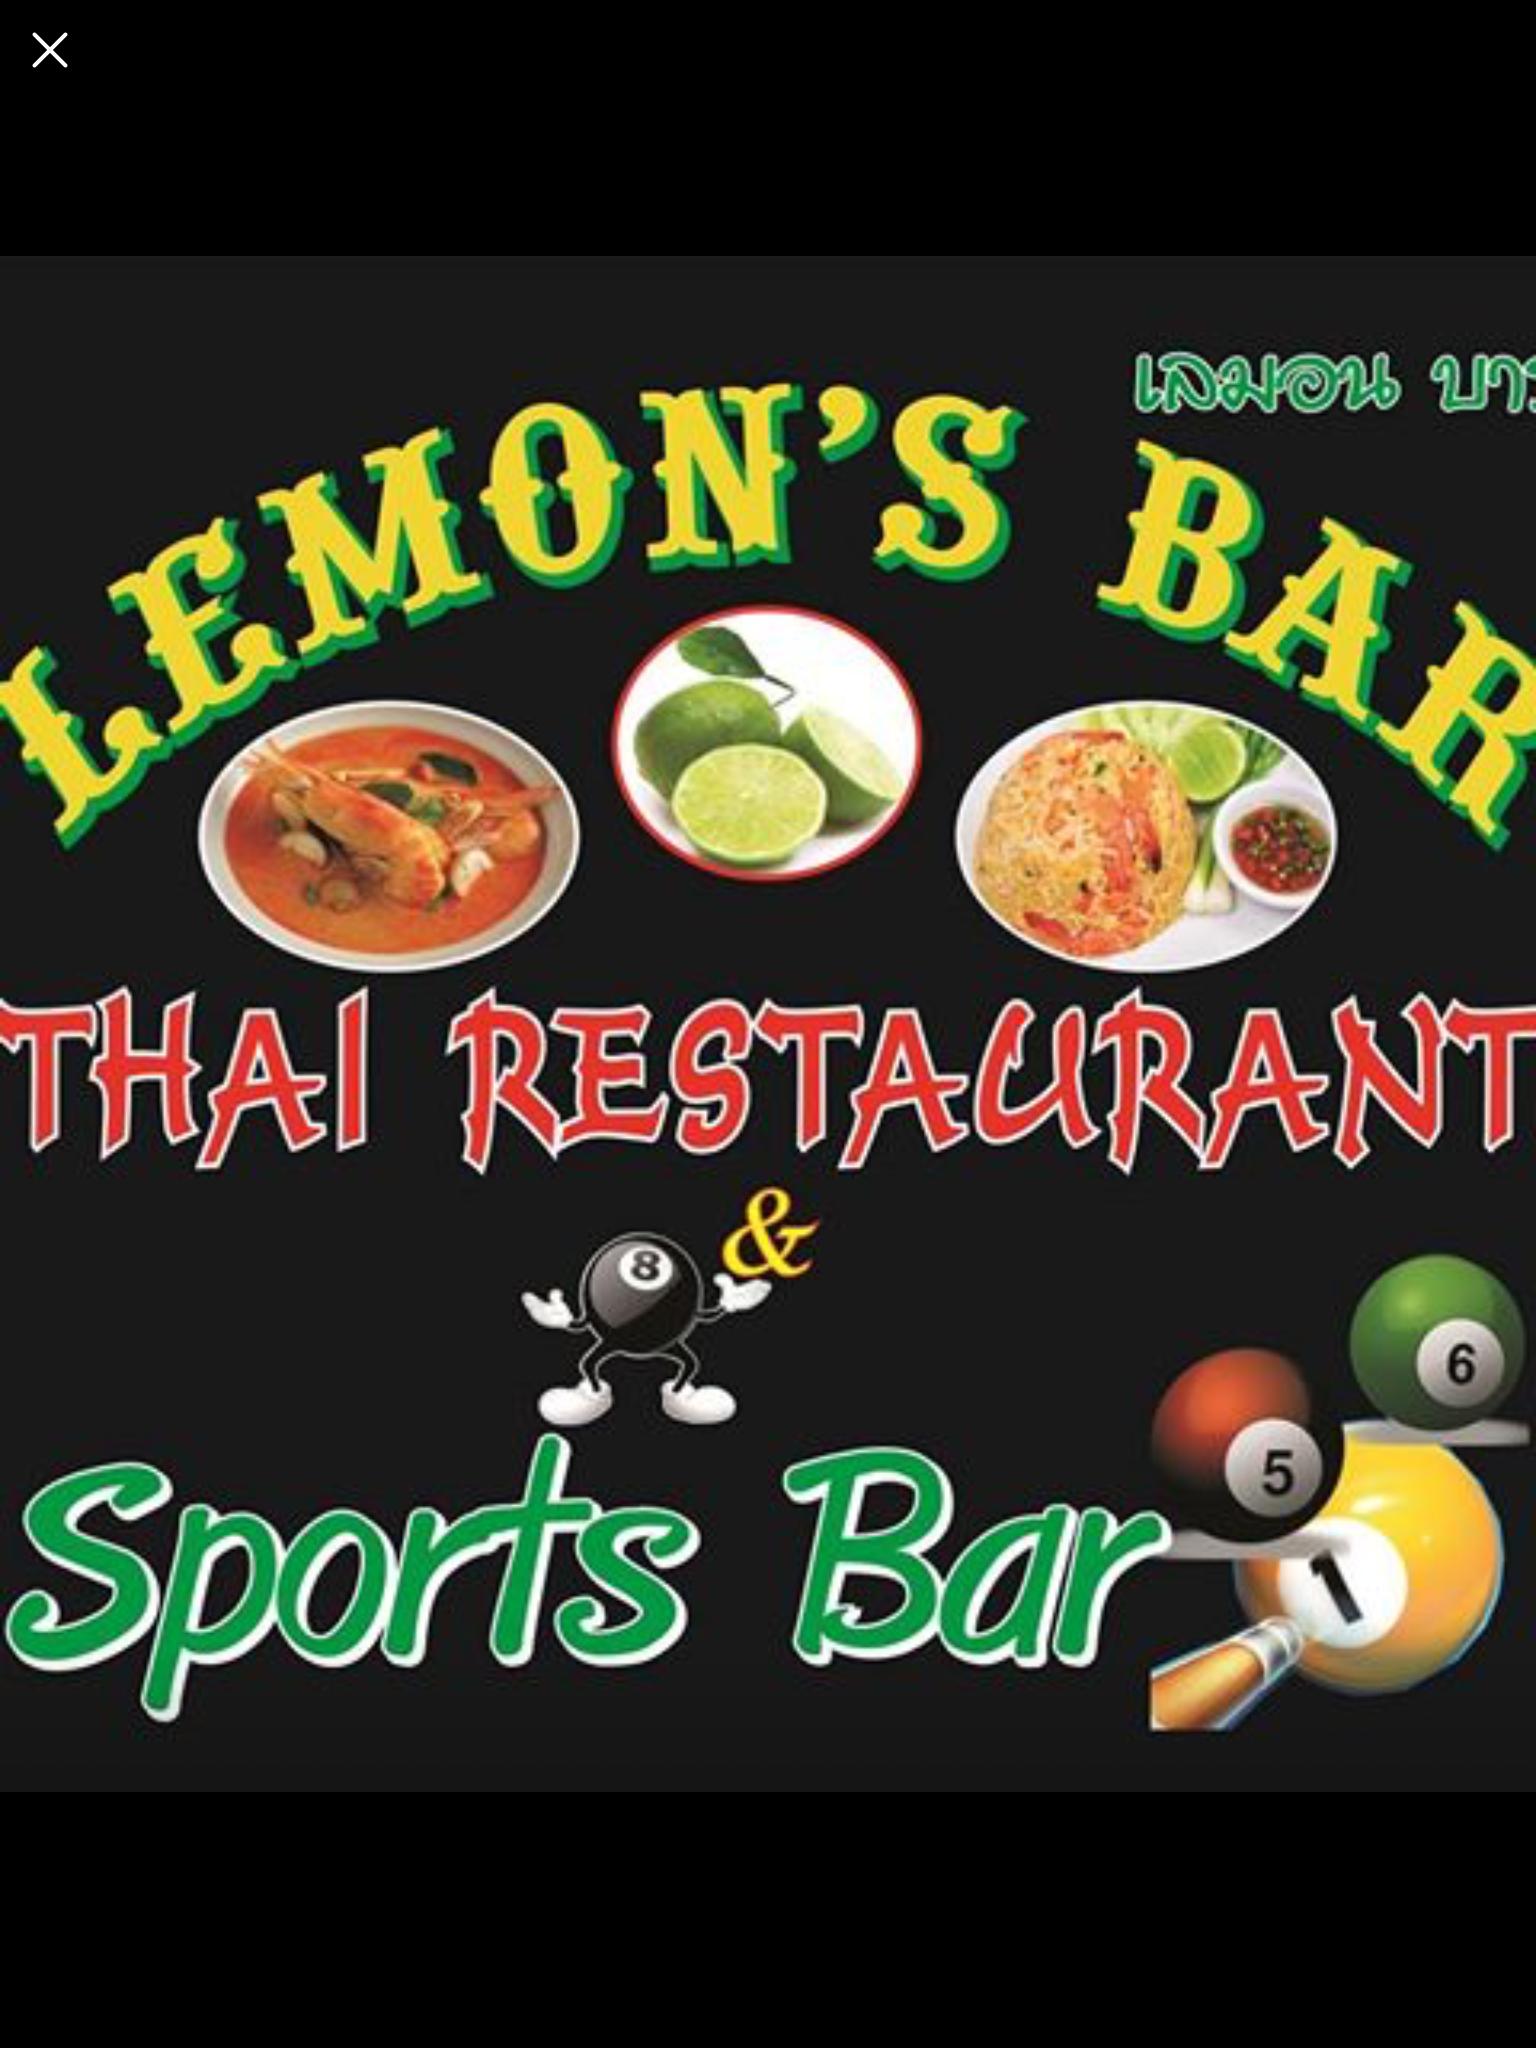 Lemon's Thai restaurant